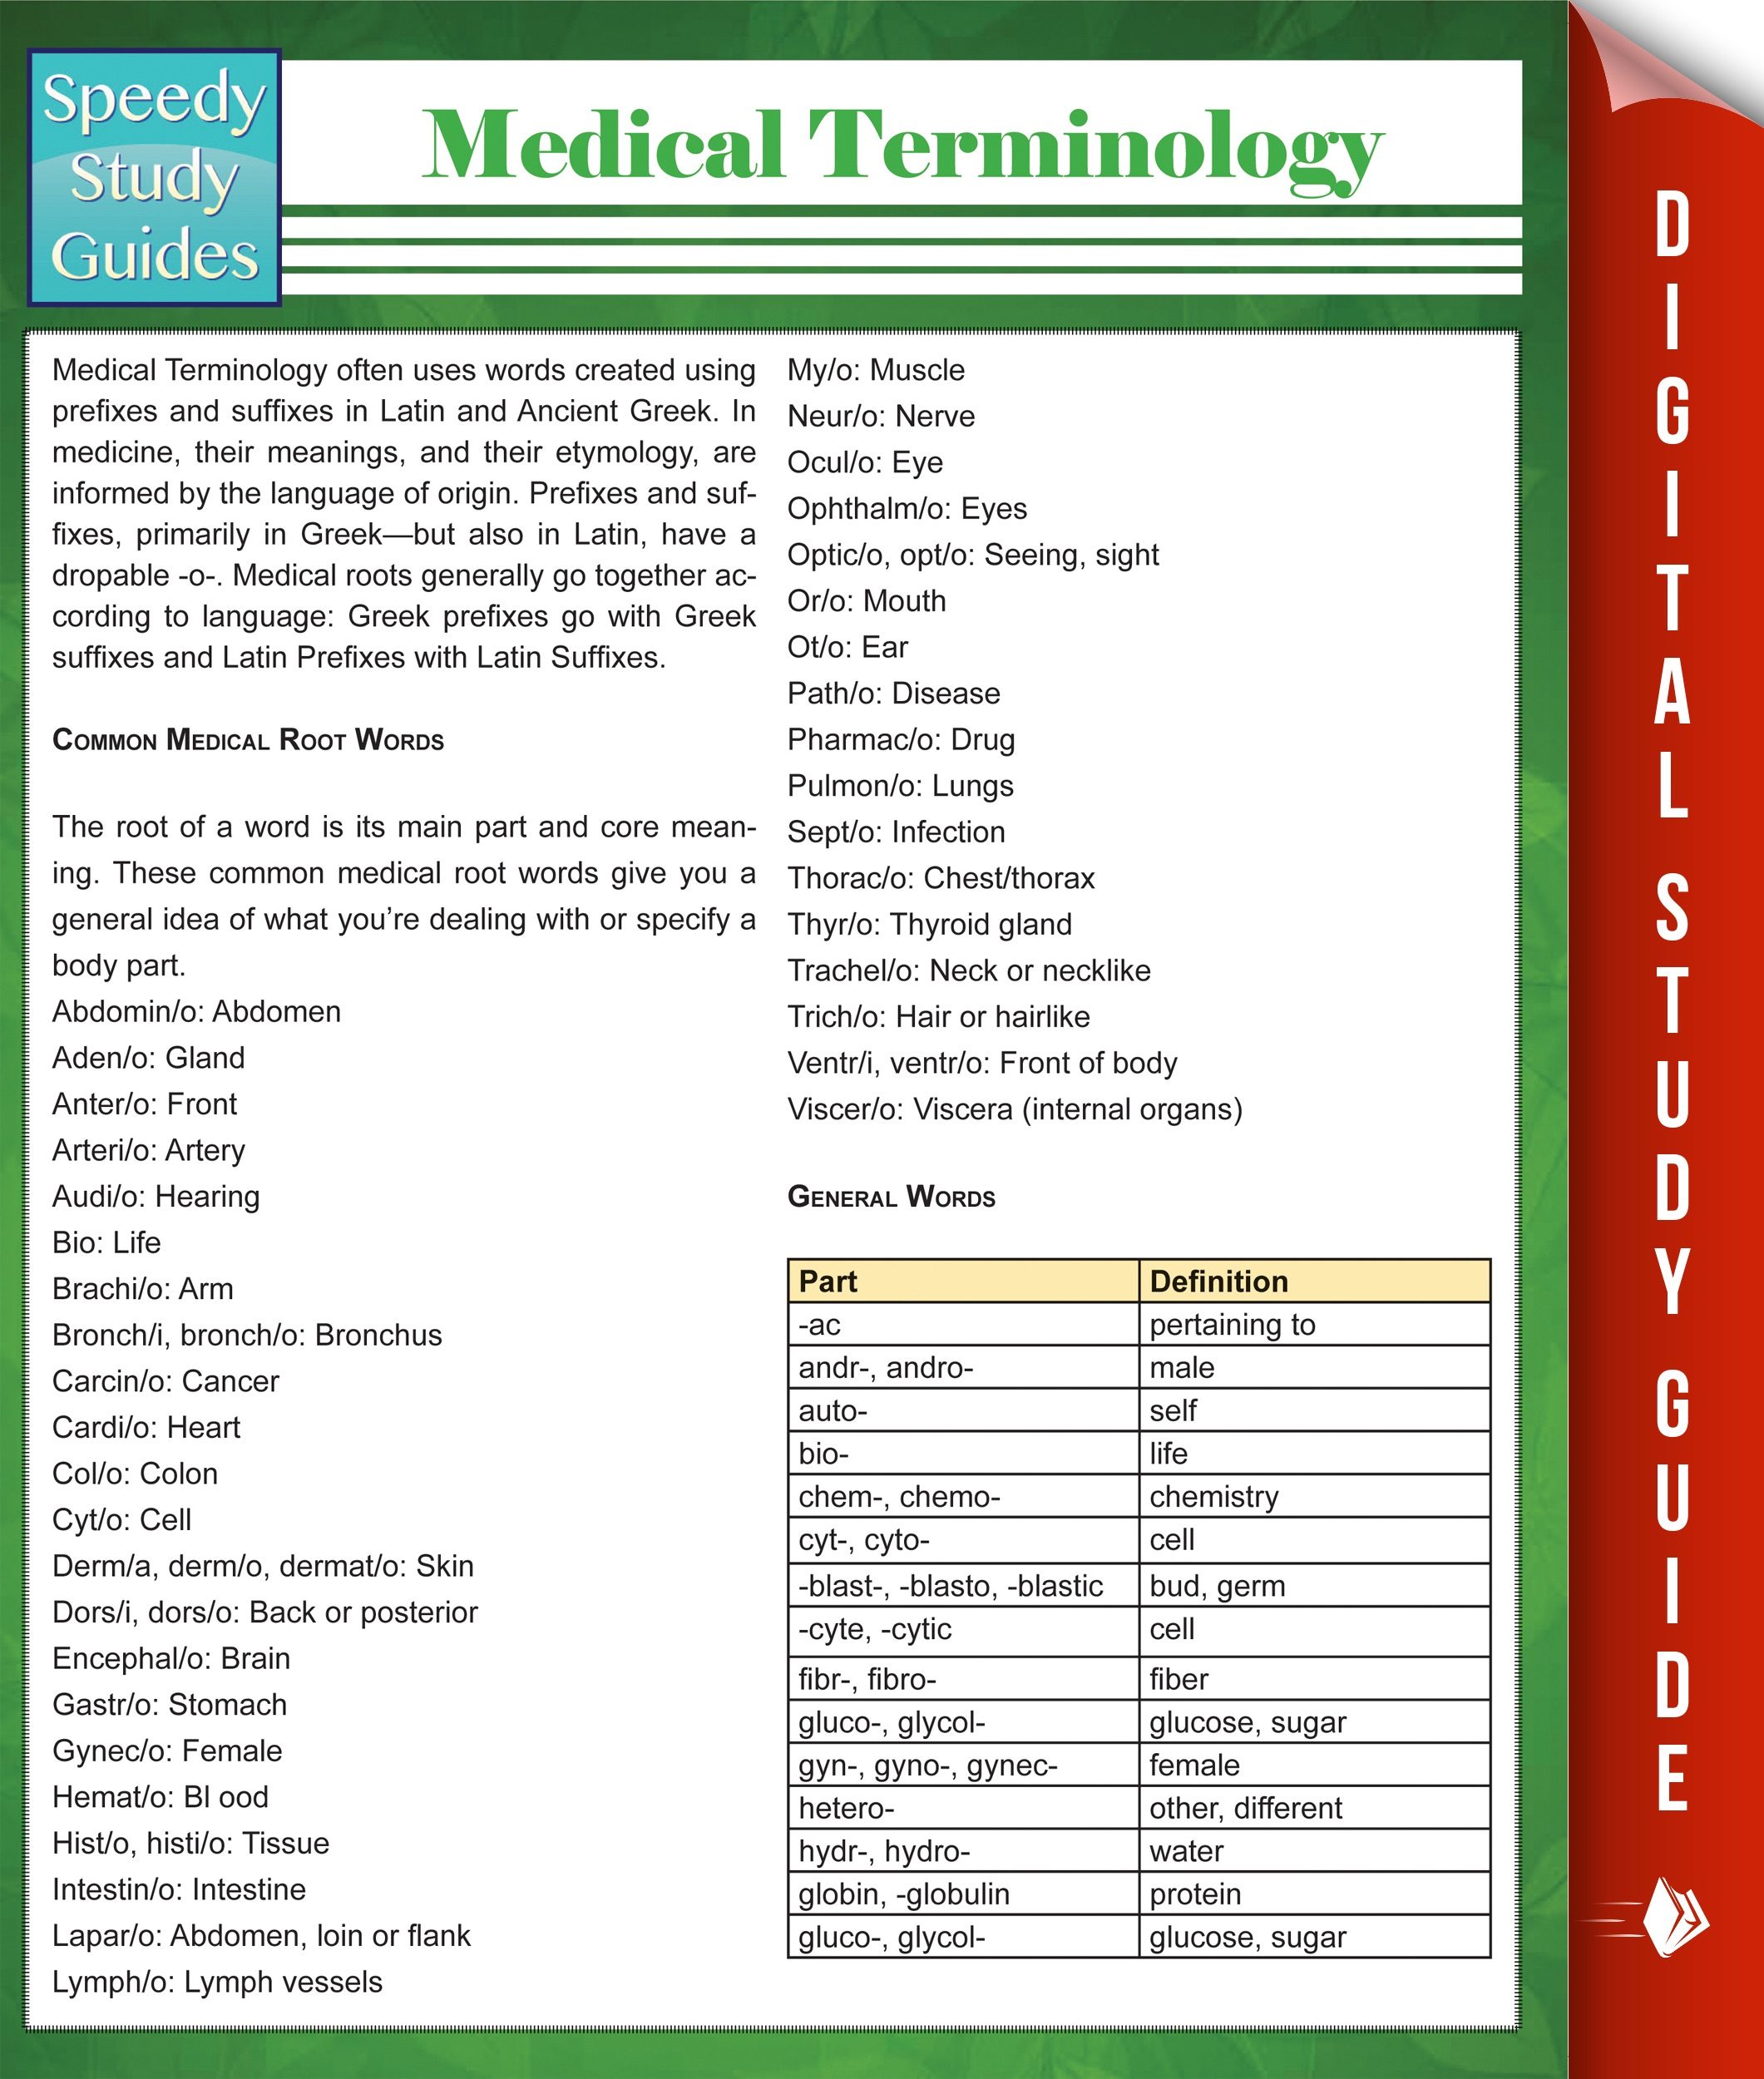 Medical Terminology (Speedy Study Guides) by Speedy Publishing on iBooks